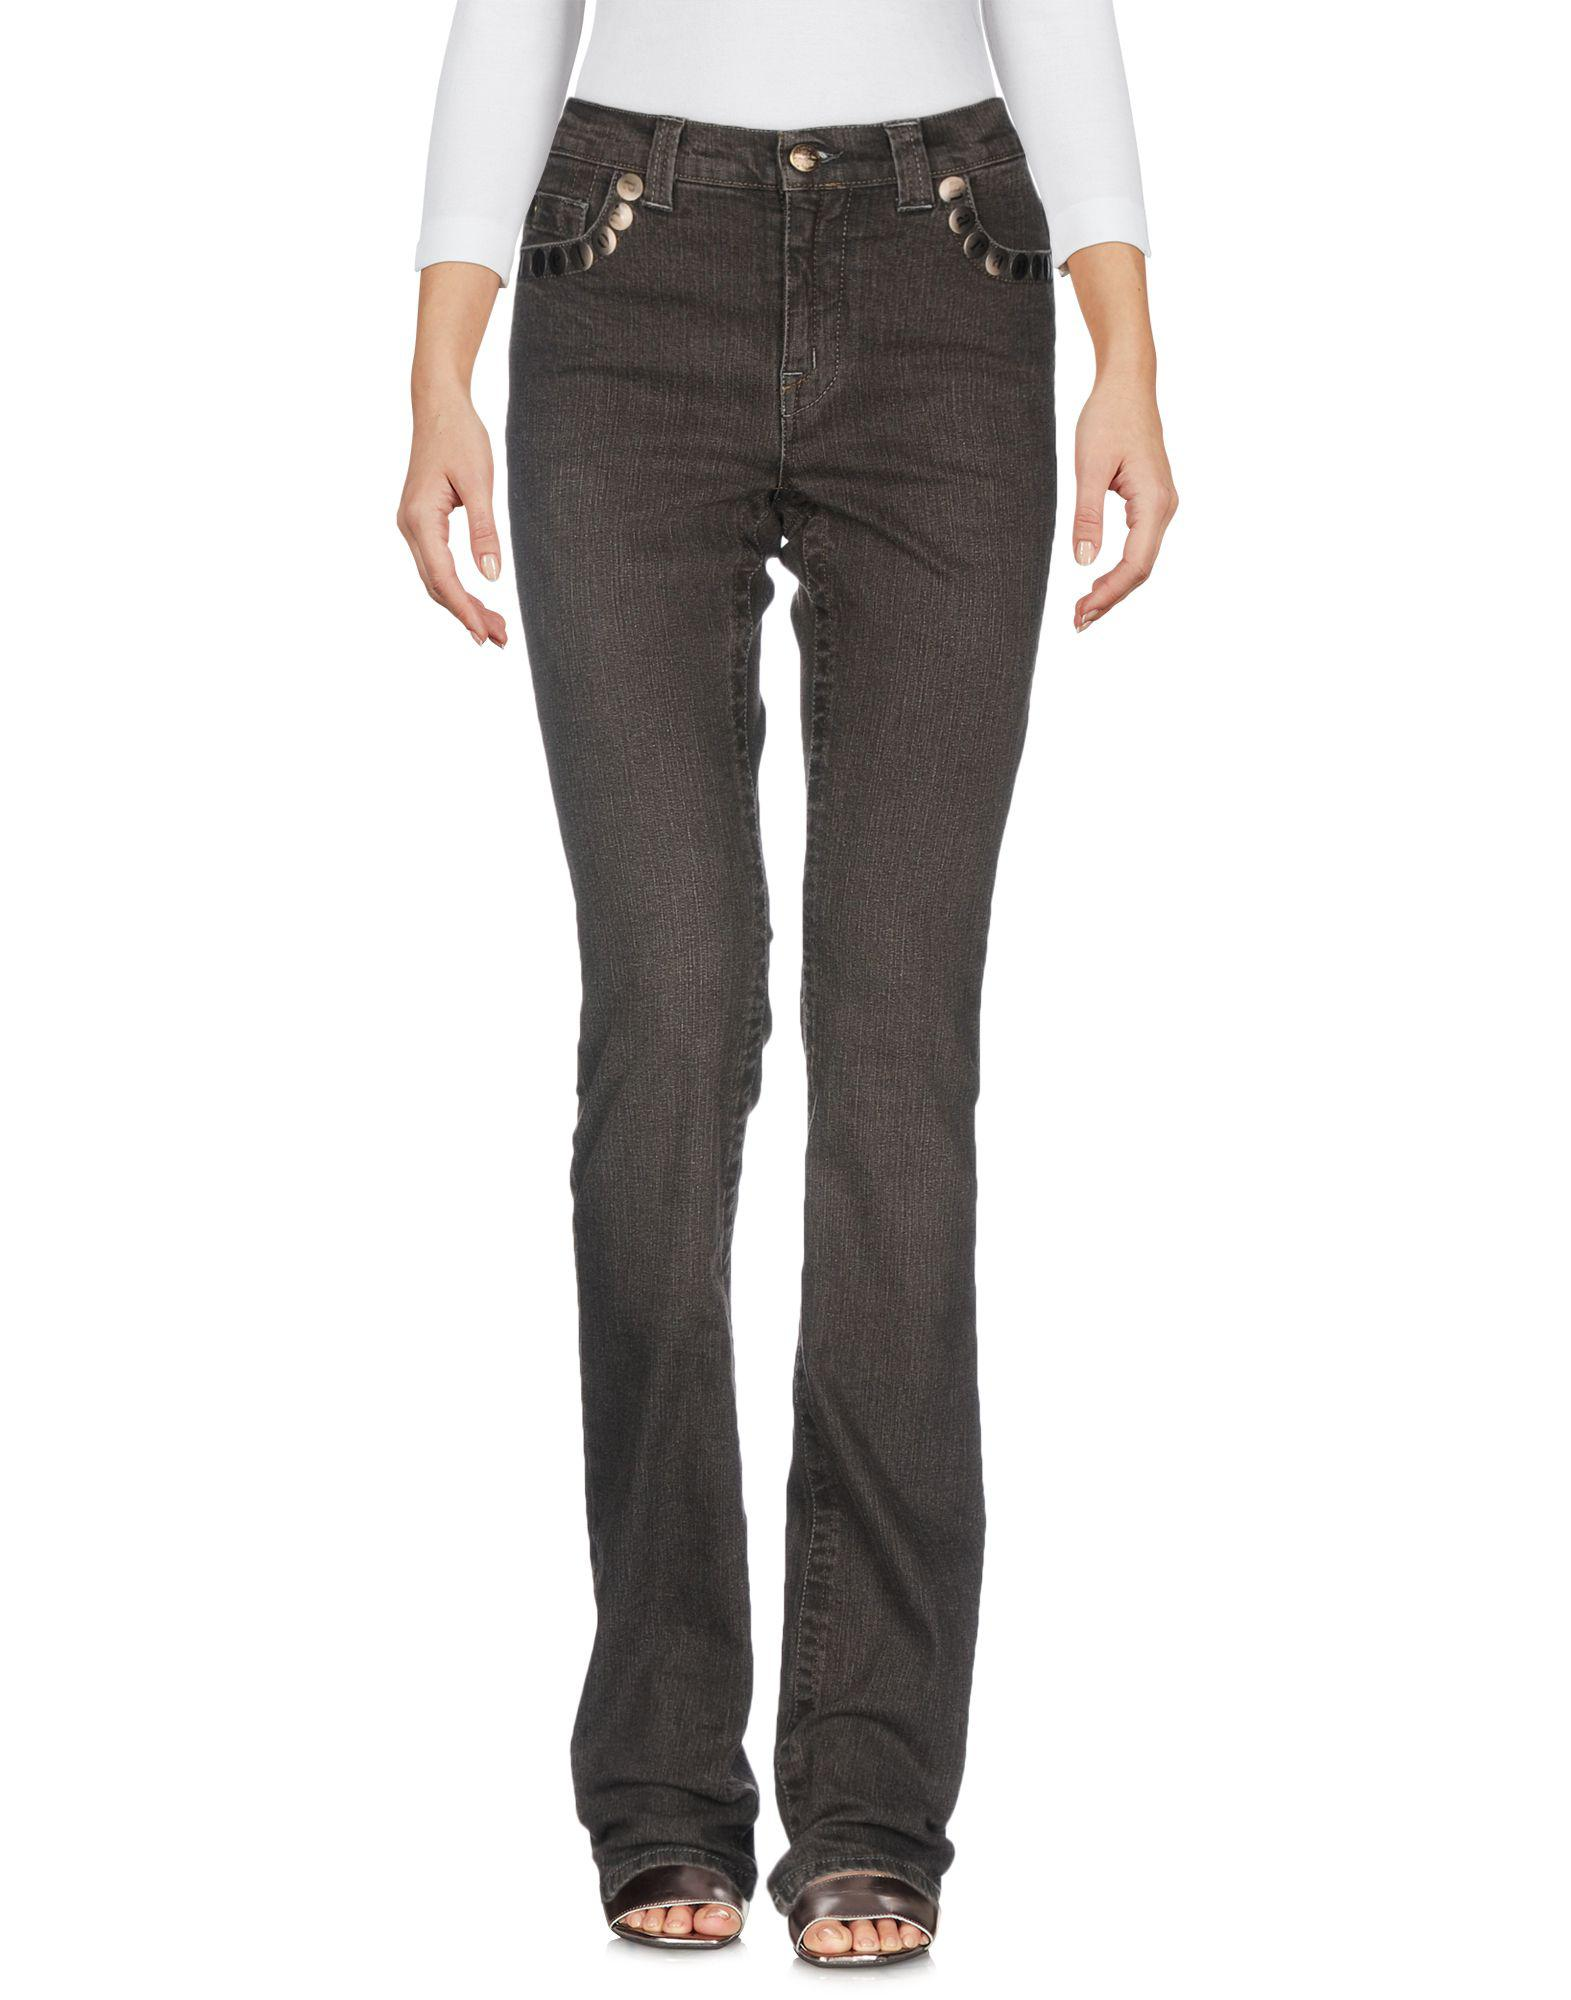 Cheap Good Selling For Sale Official Site DENIM - Denim trousers Angelo Marani Outlet Discount Sale View For Sale Footlocker Pictures Cheap Price hsQ0Rpk9GQ